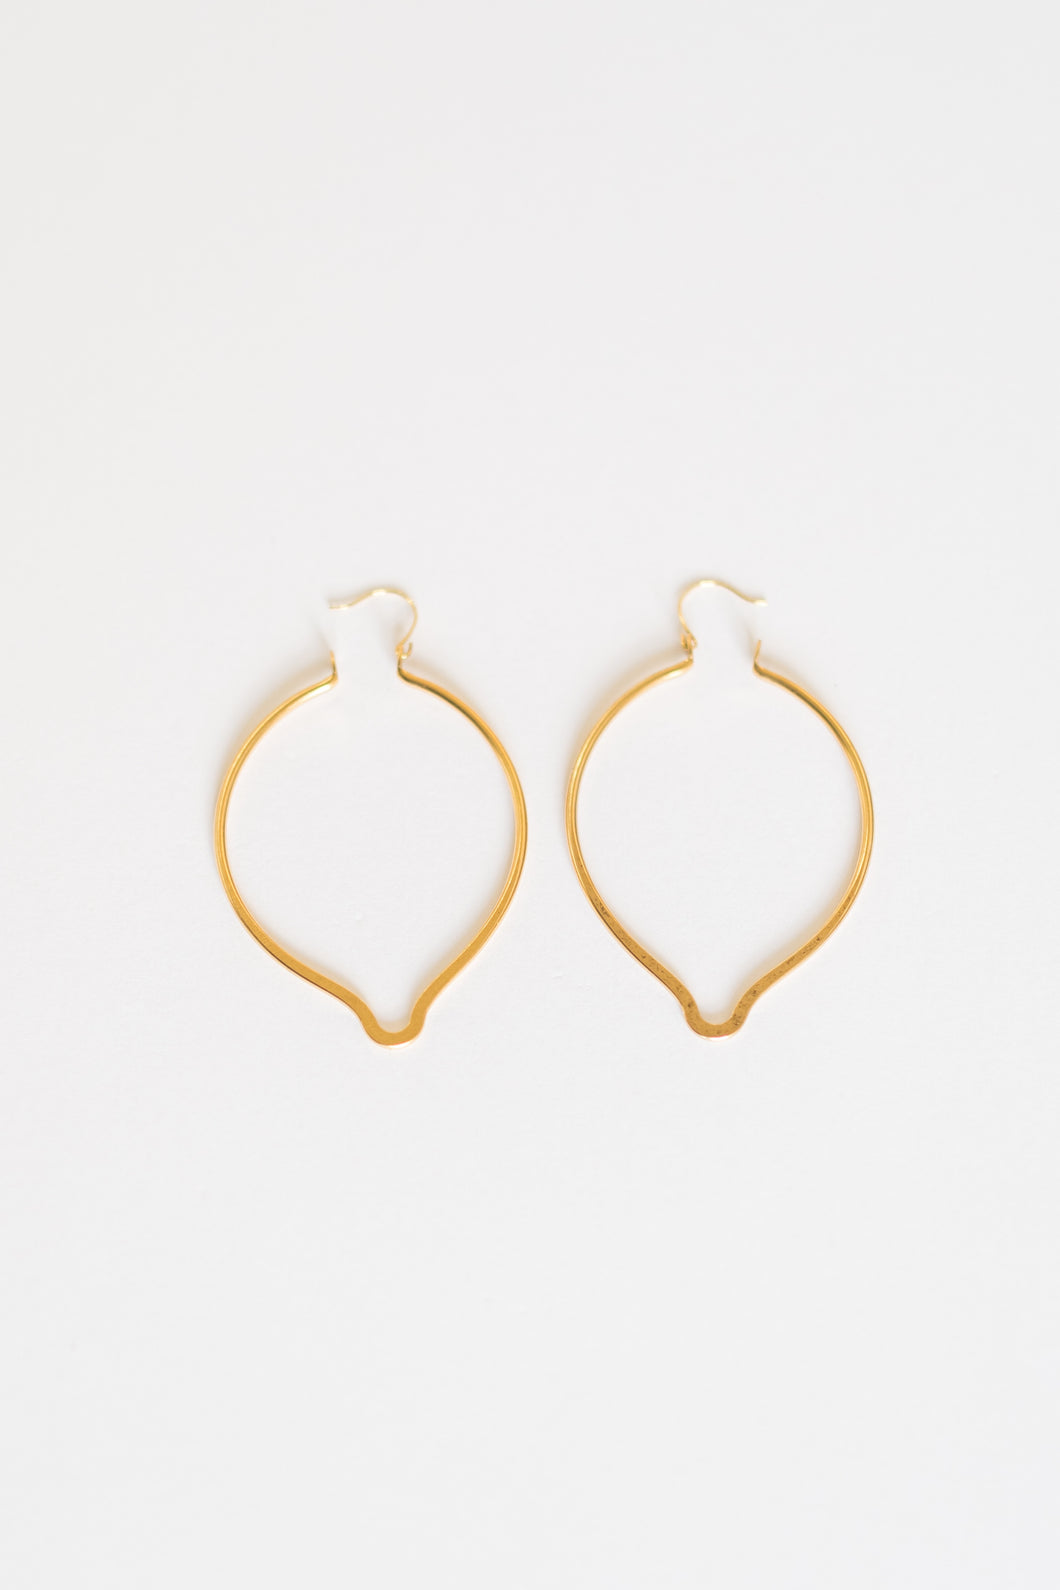 gold_earrings_raleigh_non_profit